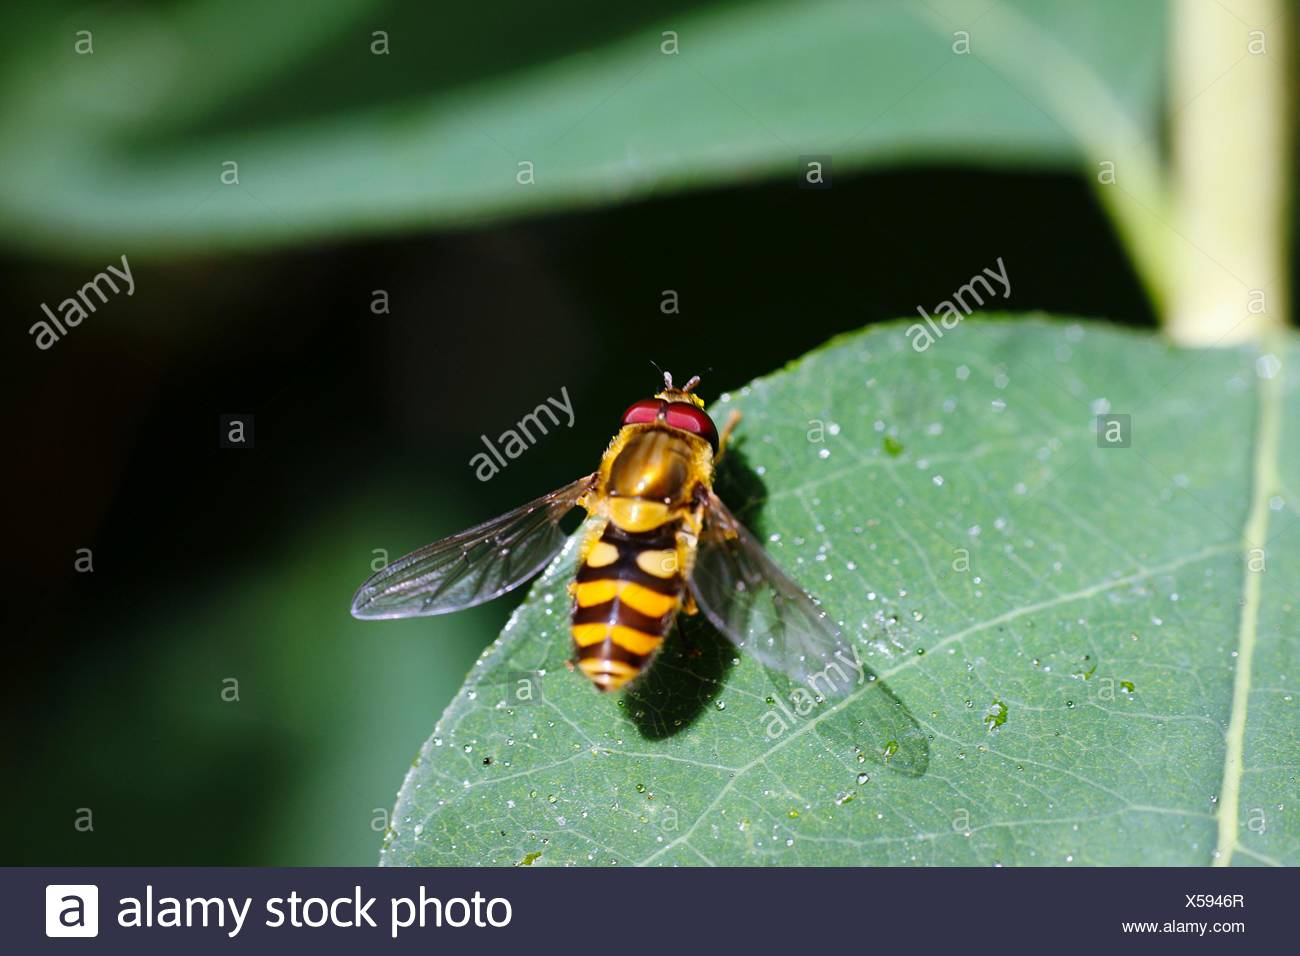 Close-Up Of Honey Bee On Leaf - Stock Image